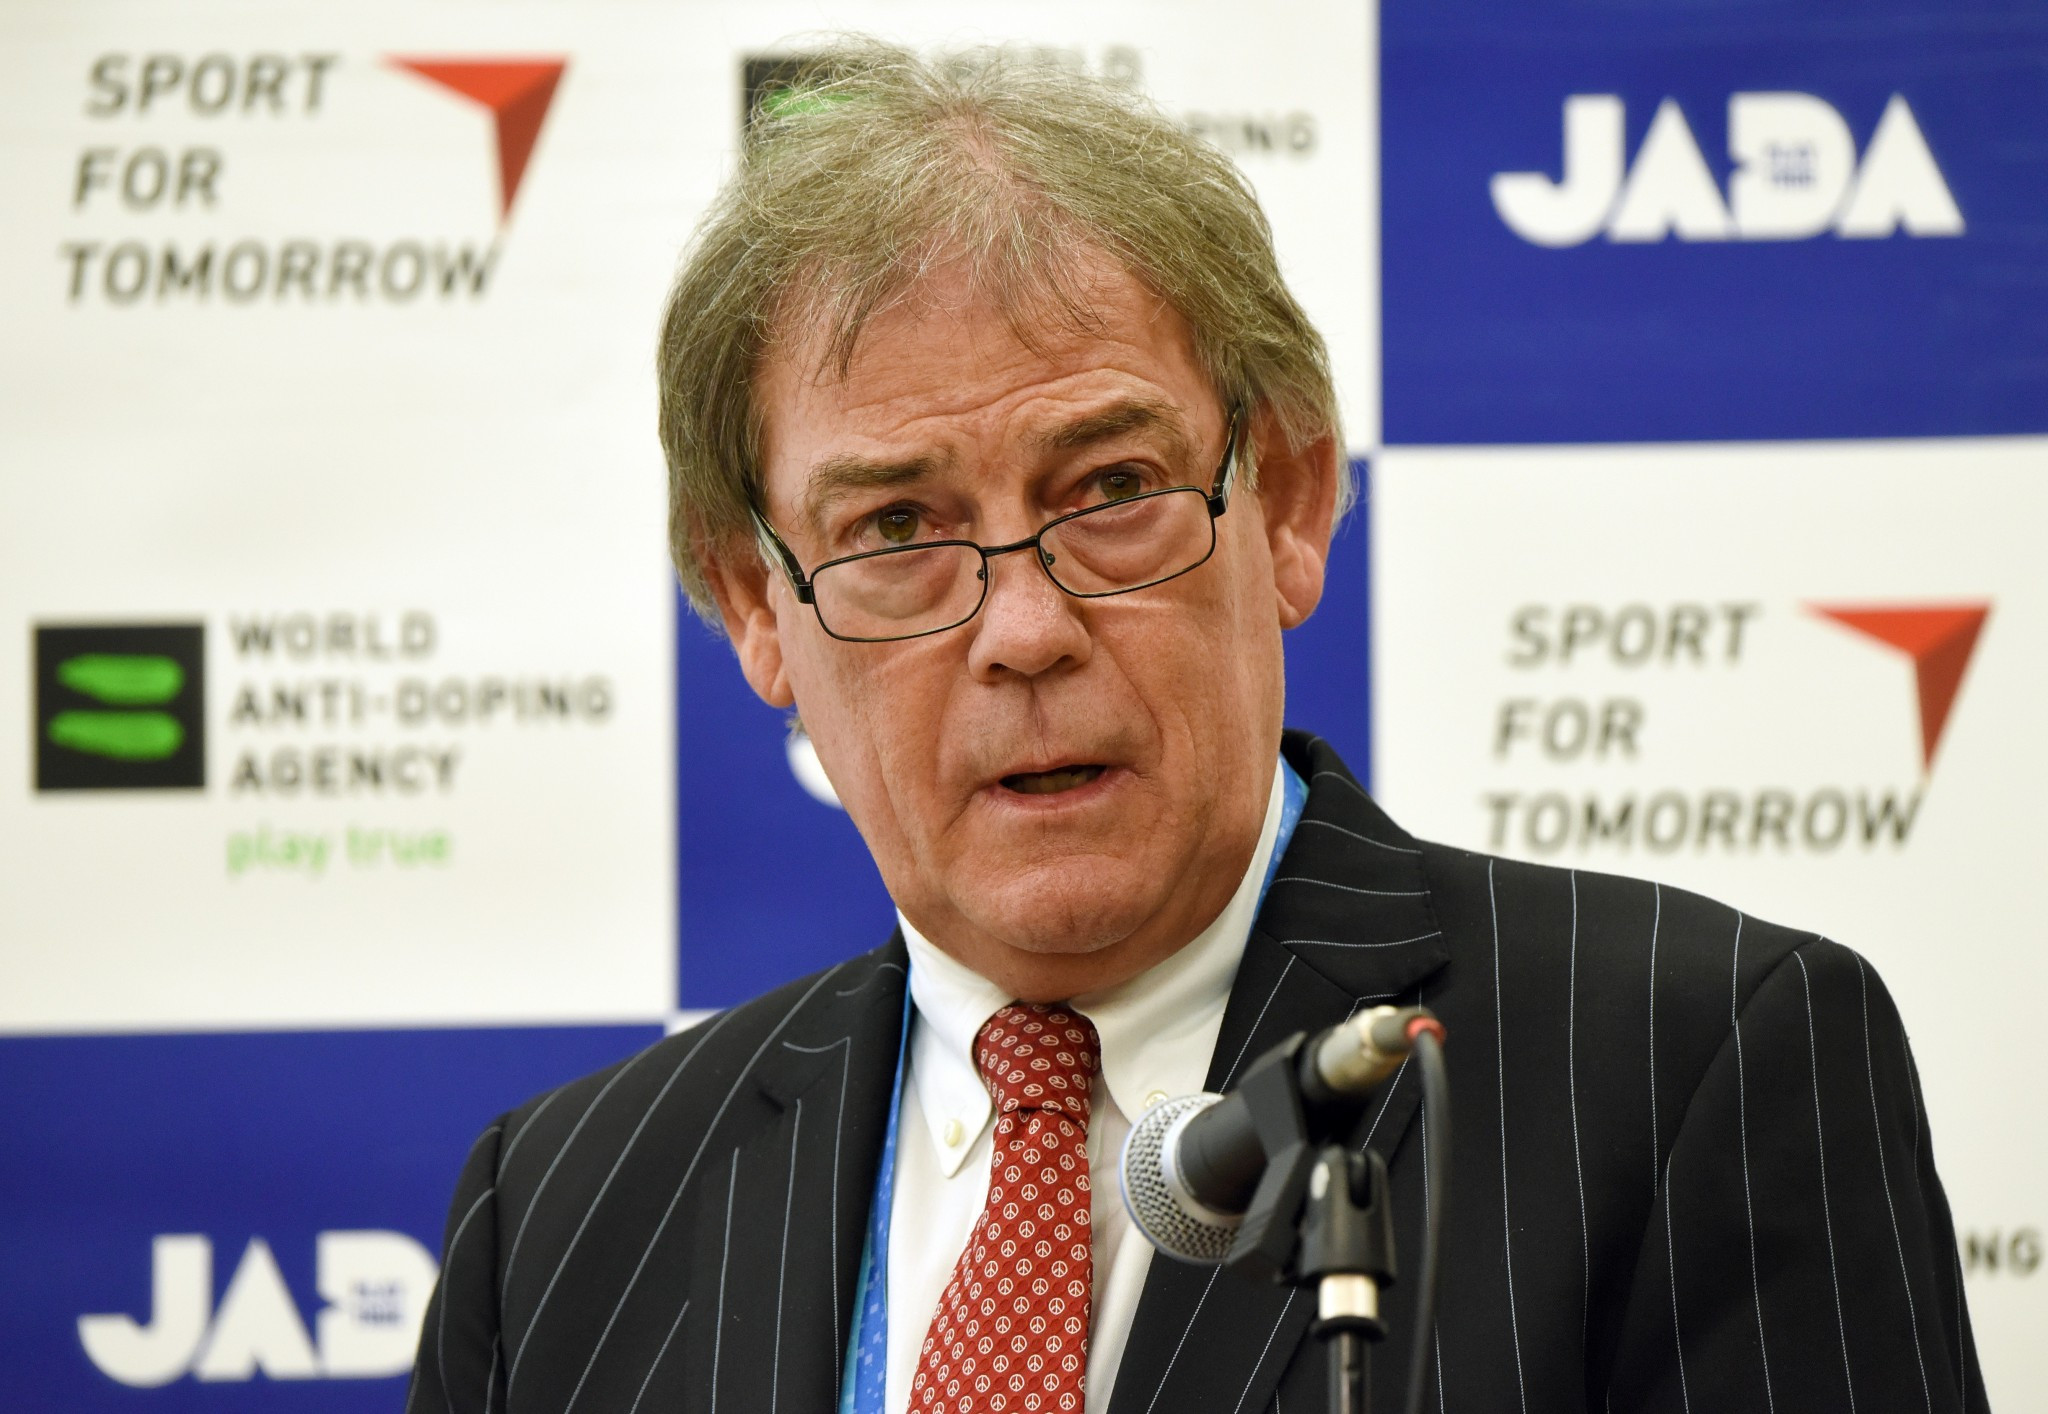 Former World Anti-Doping Agency director general David Howman has praised Brian Cookson's efforts in improving relations between the organisations ©Getty Images